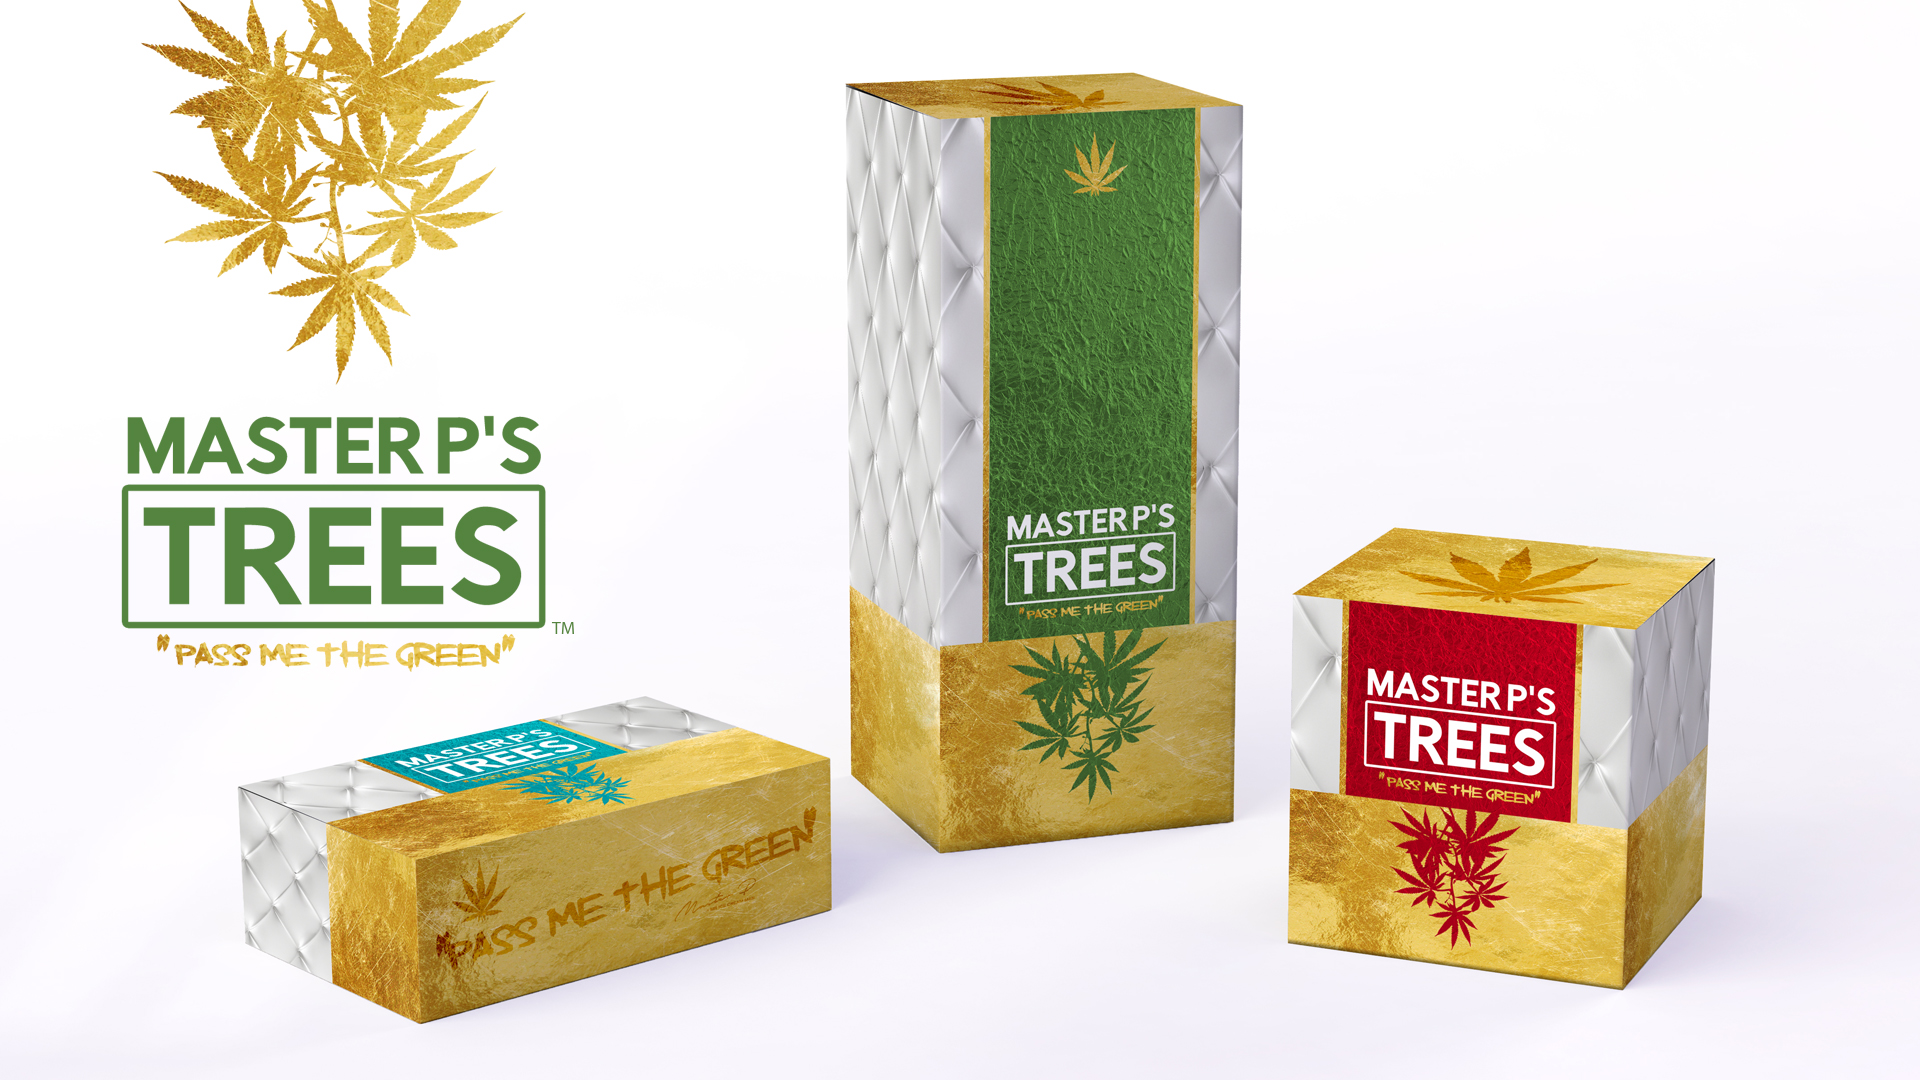 masterptrees_promobanner_boxes1